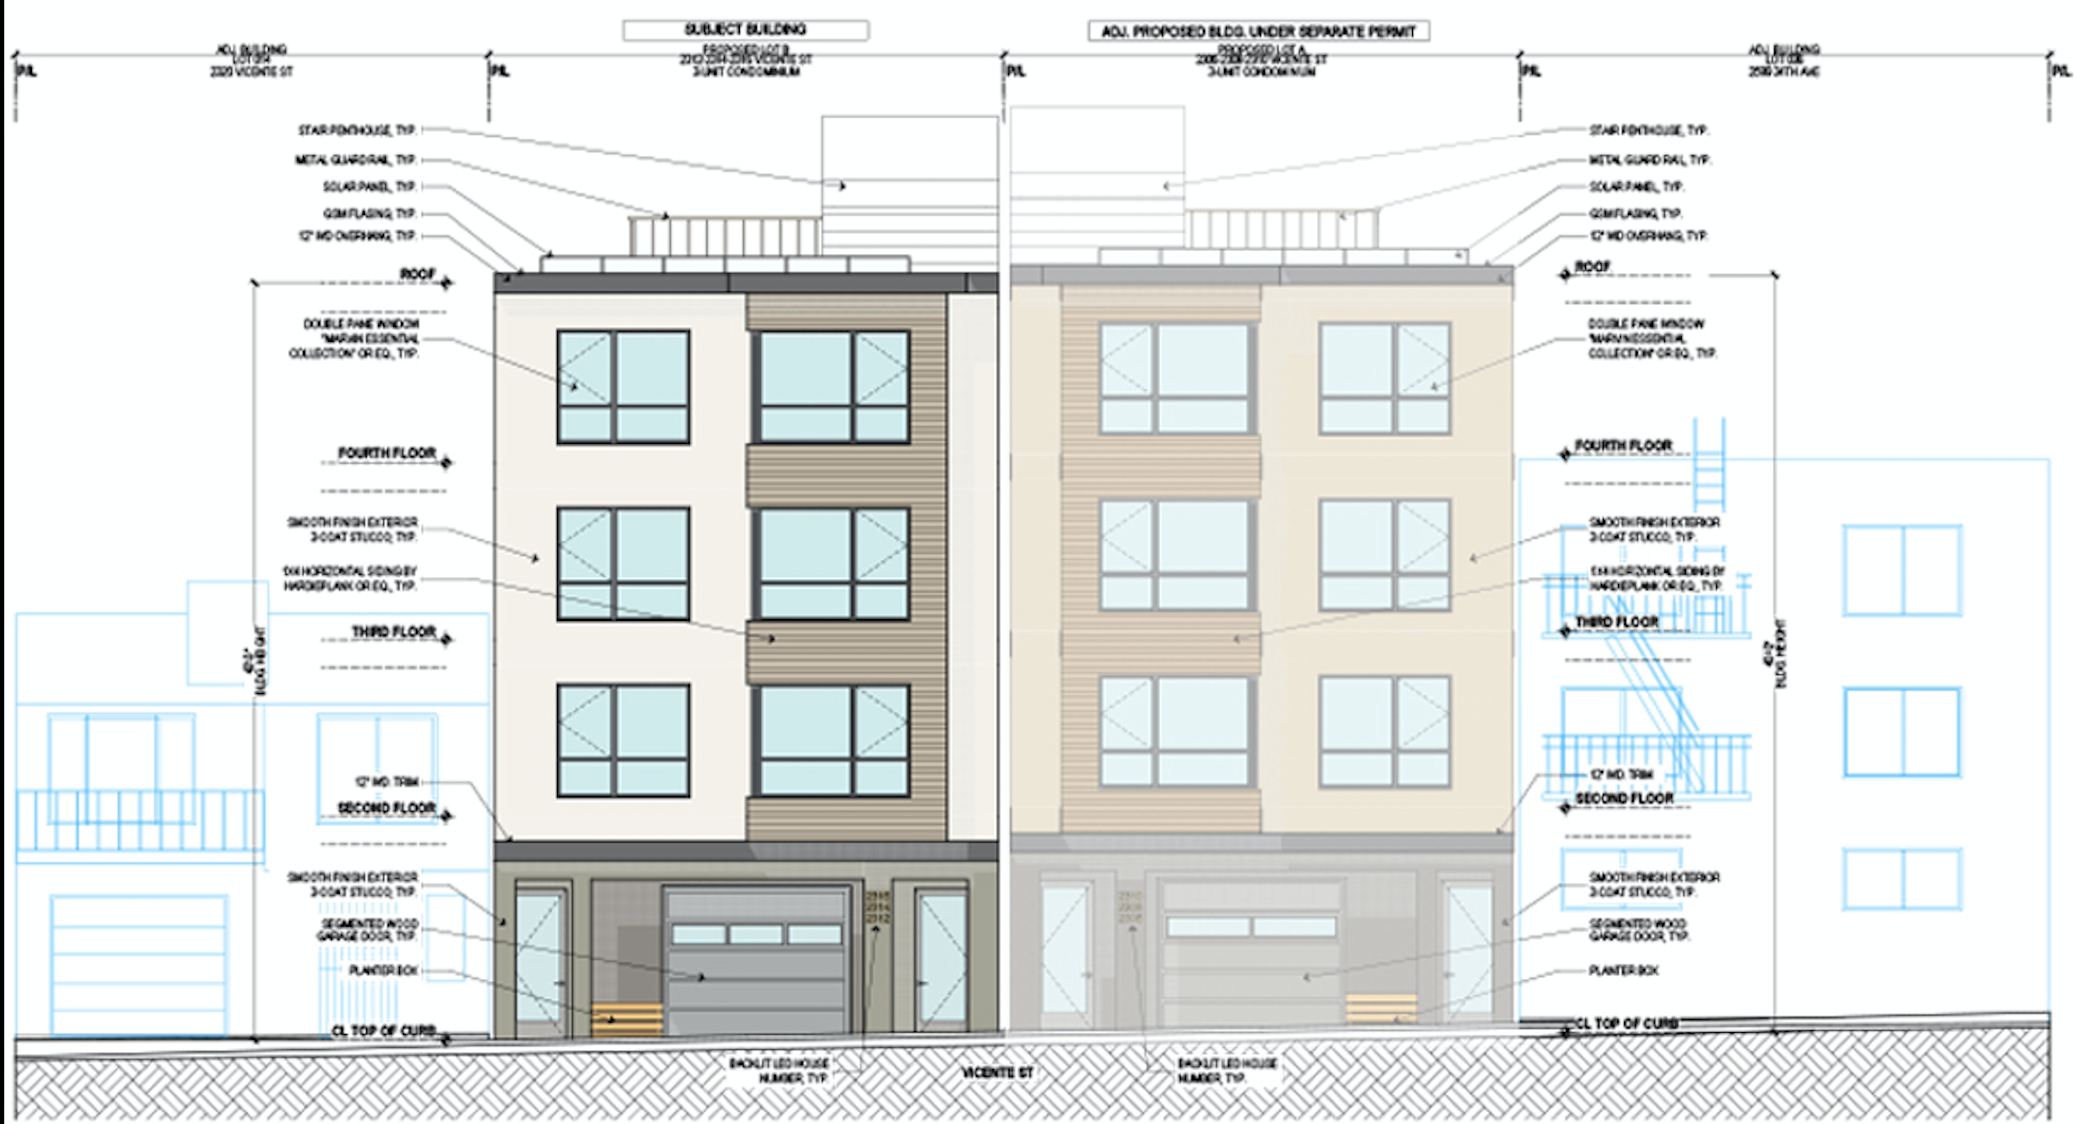 Proposed Elevation 2312 Vicente Street via Schaubly Architects